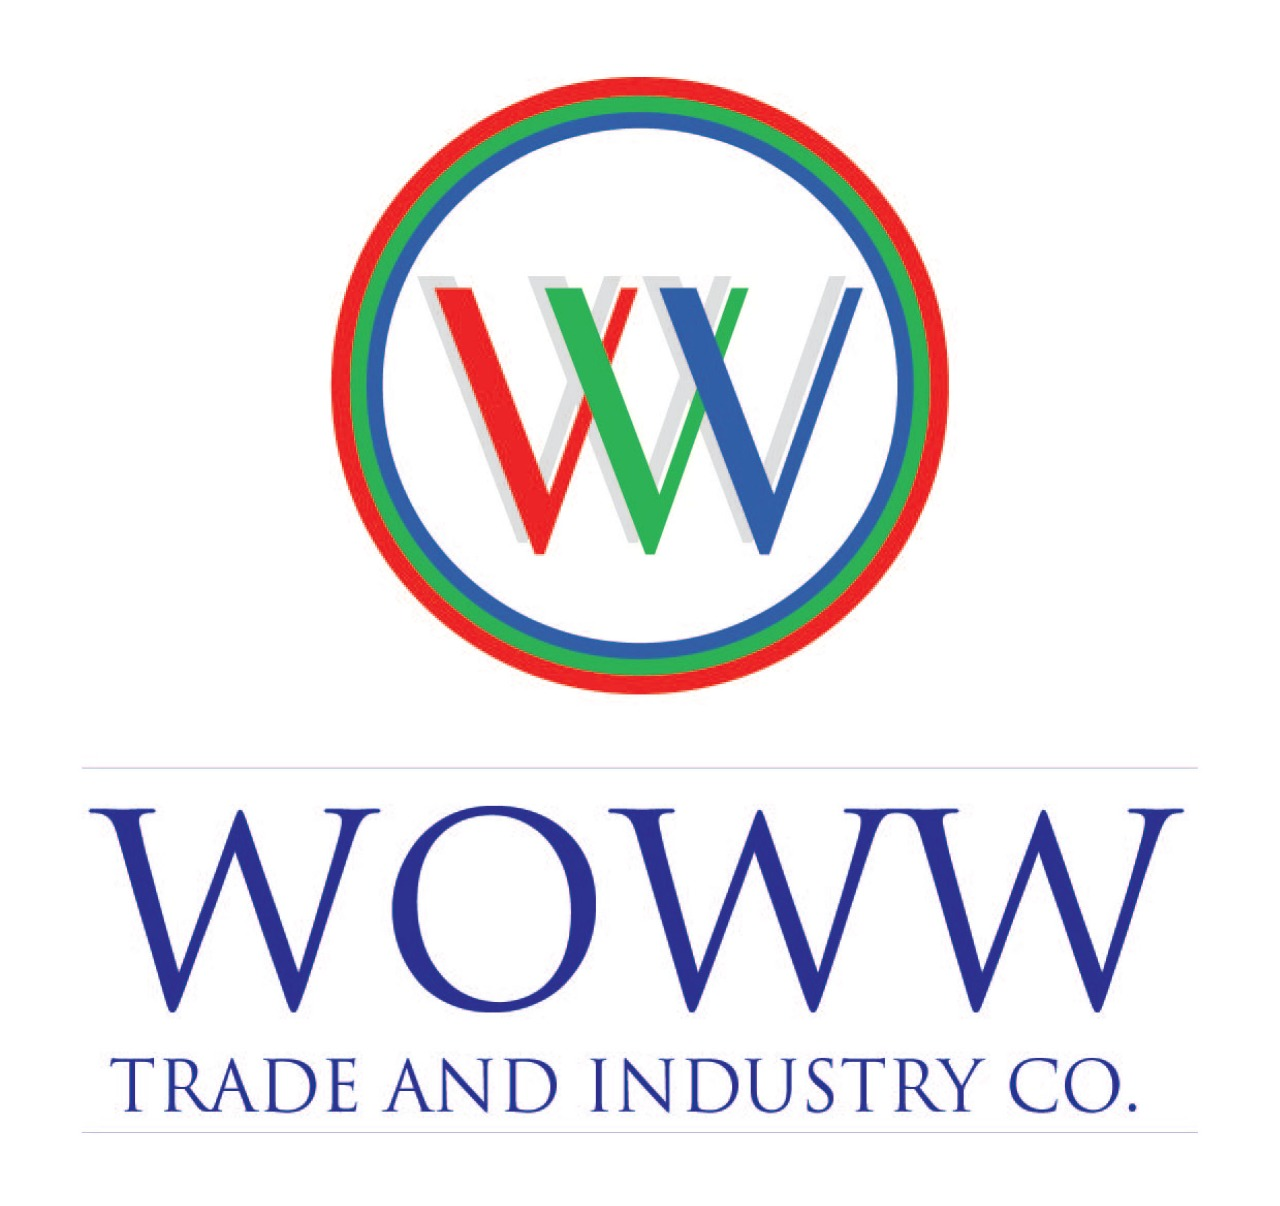 WOWW for Trading and Industry